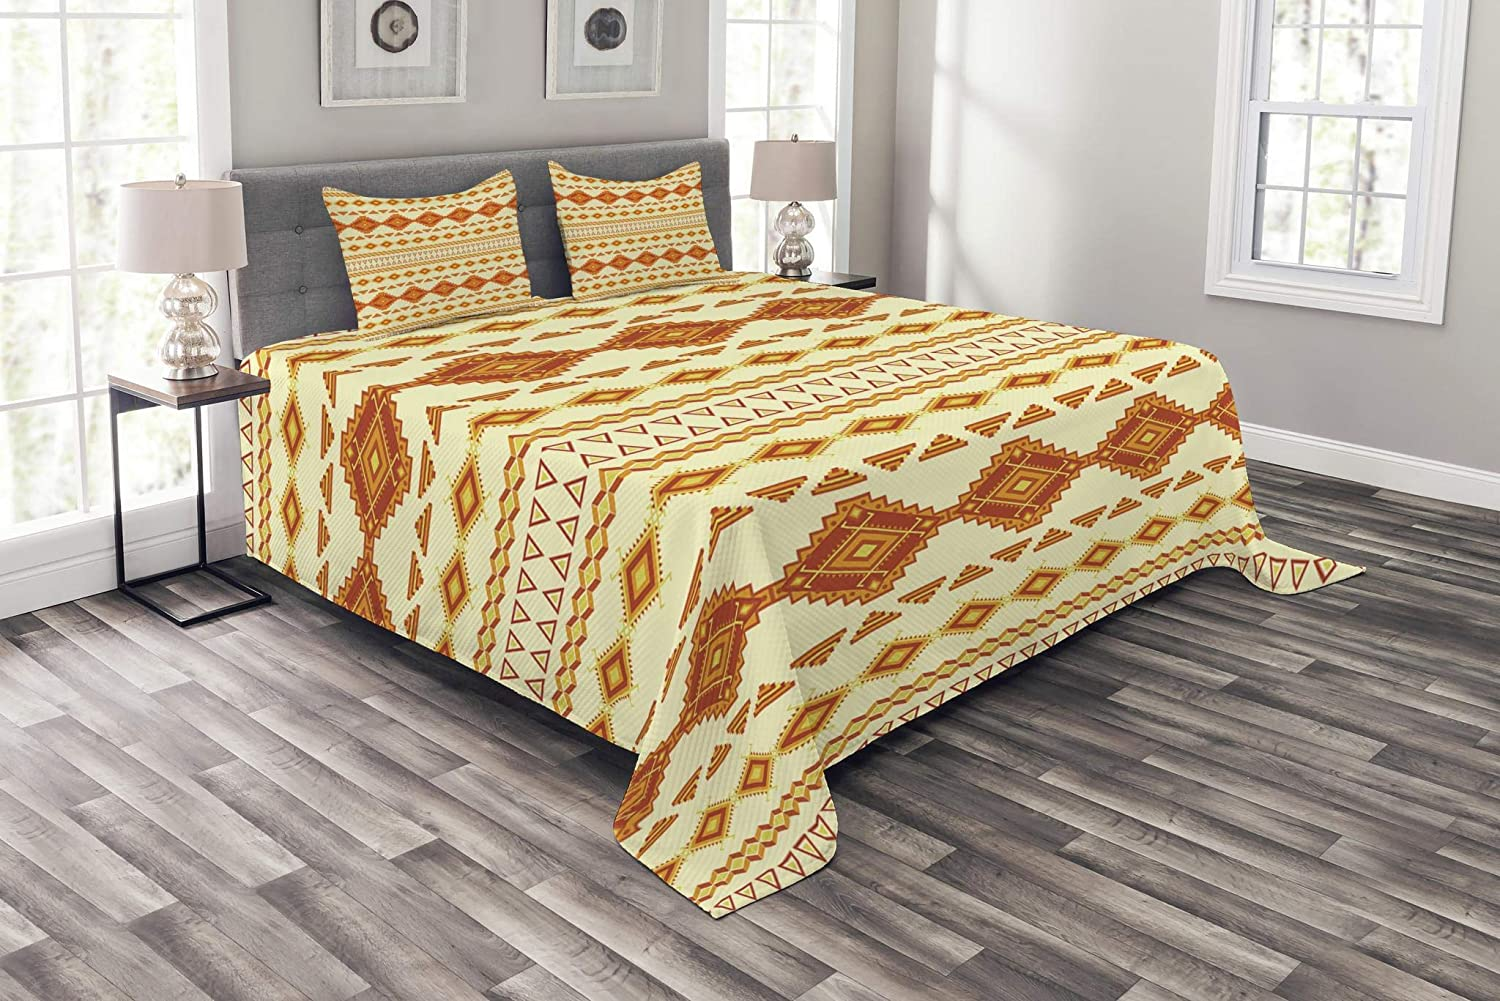 Ambesonne Aztec Bedspread, Old Pattern with Vintage Colors Mexican Indigenous Culture, Decorative Quilted 3 Piece Coverlet Set with 2 Pillow Shams, Queen Size, Orange Yellow